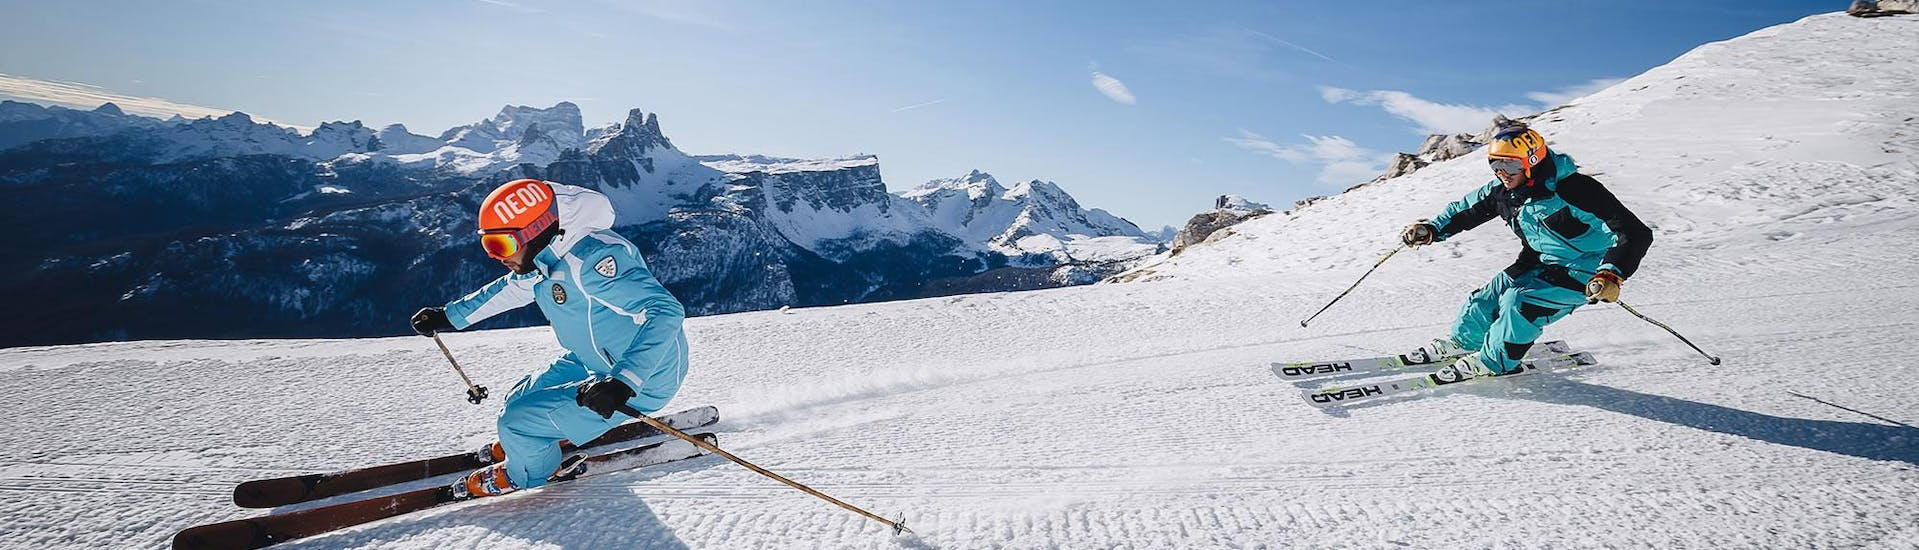 A ski instructor is leading the way down a ski slope in the ski resort of Cortina d'Ampezzo during one of the Ski Lessons for Adults - Beginner organised by the ski school Scuola di Sci e Snowboard Cristallo Cortina.